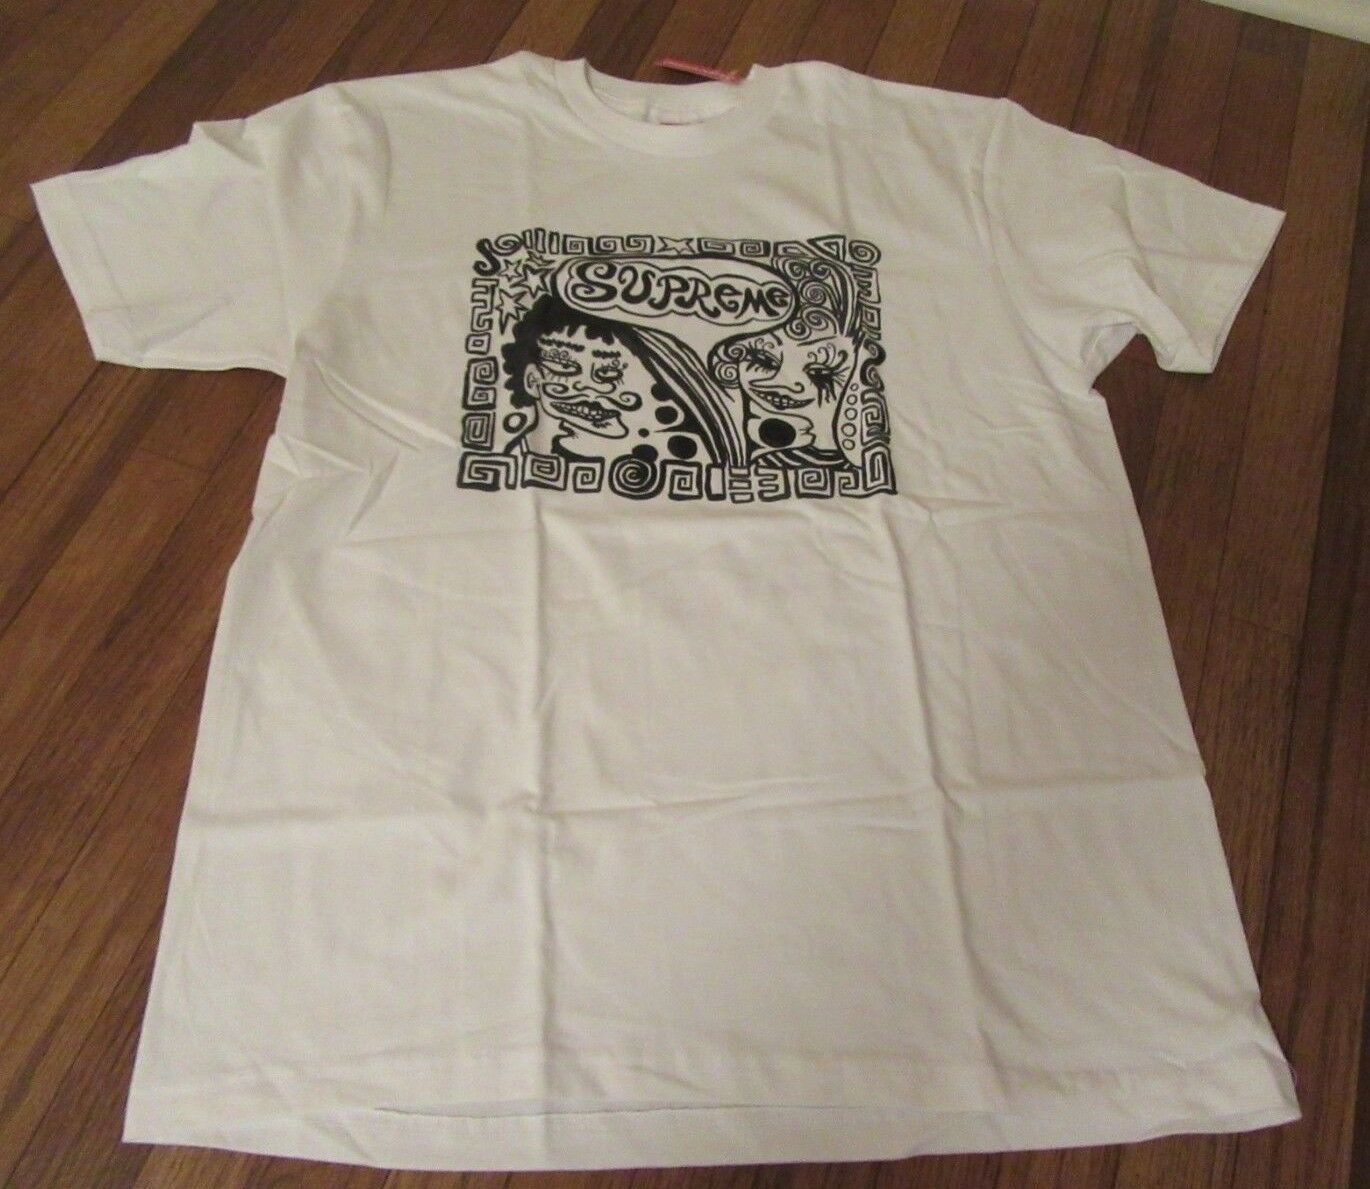 Supreme Faces Tee T-Shirt Size Large White FW18T7 FW18 Supreme New York NEW 2018